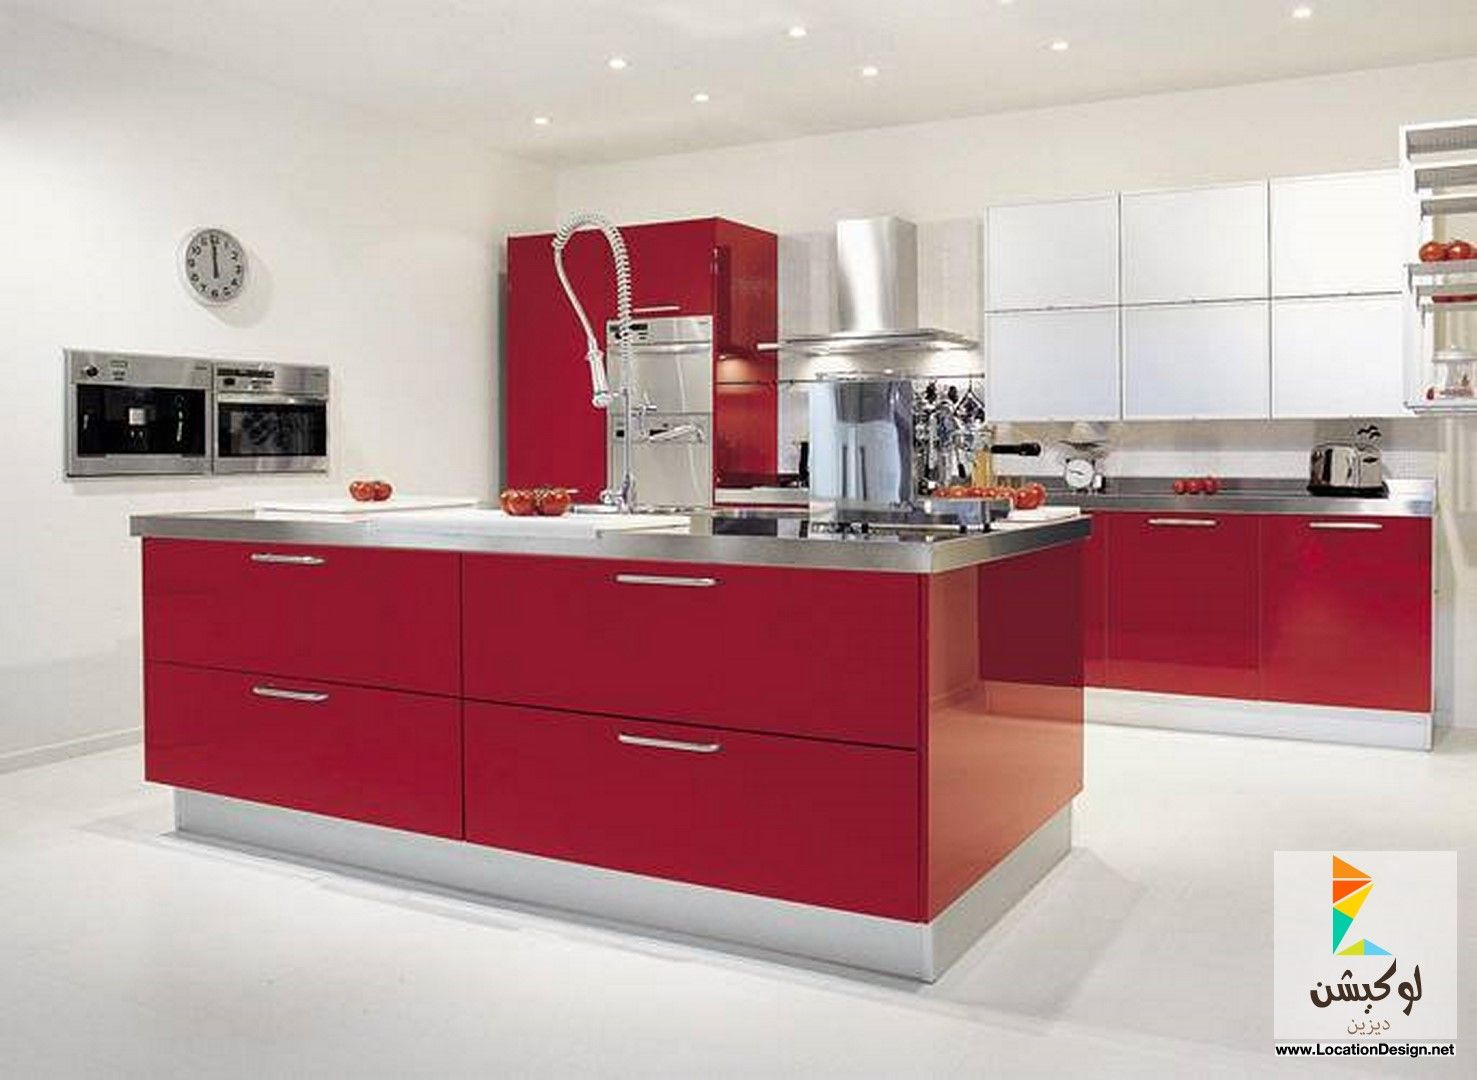 View The Designs Of Violet Designs   Fitted Kitchens, Bathrooms, Bedrooms